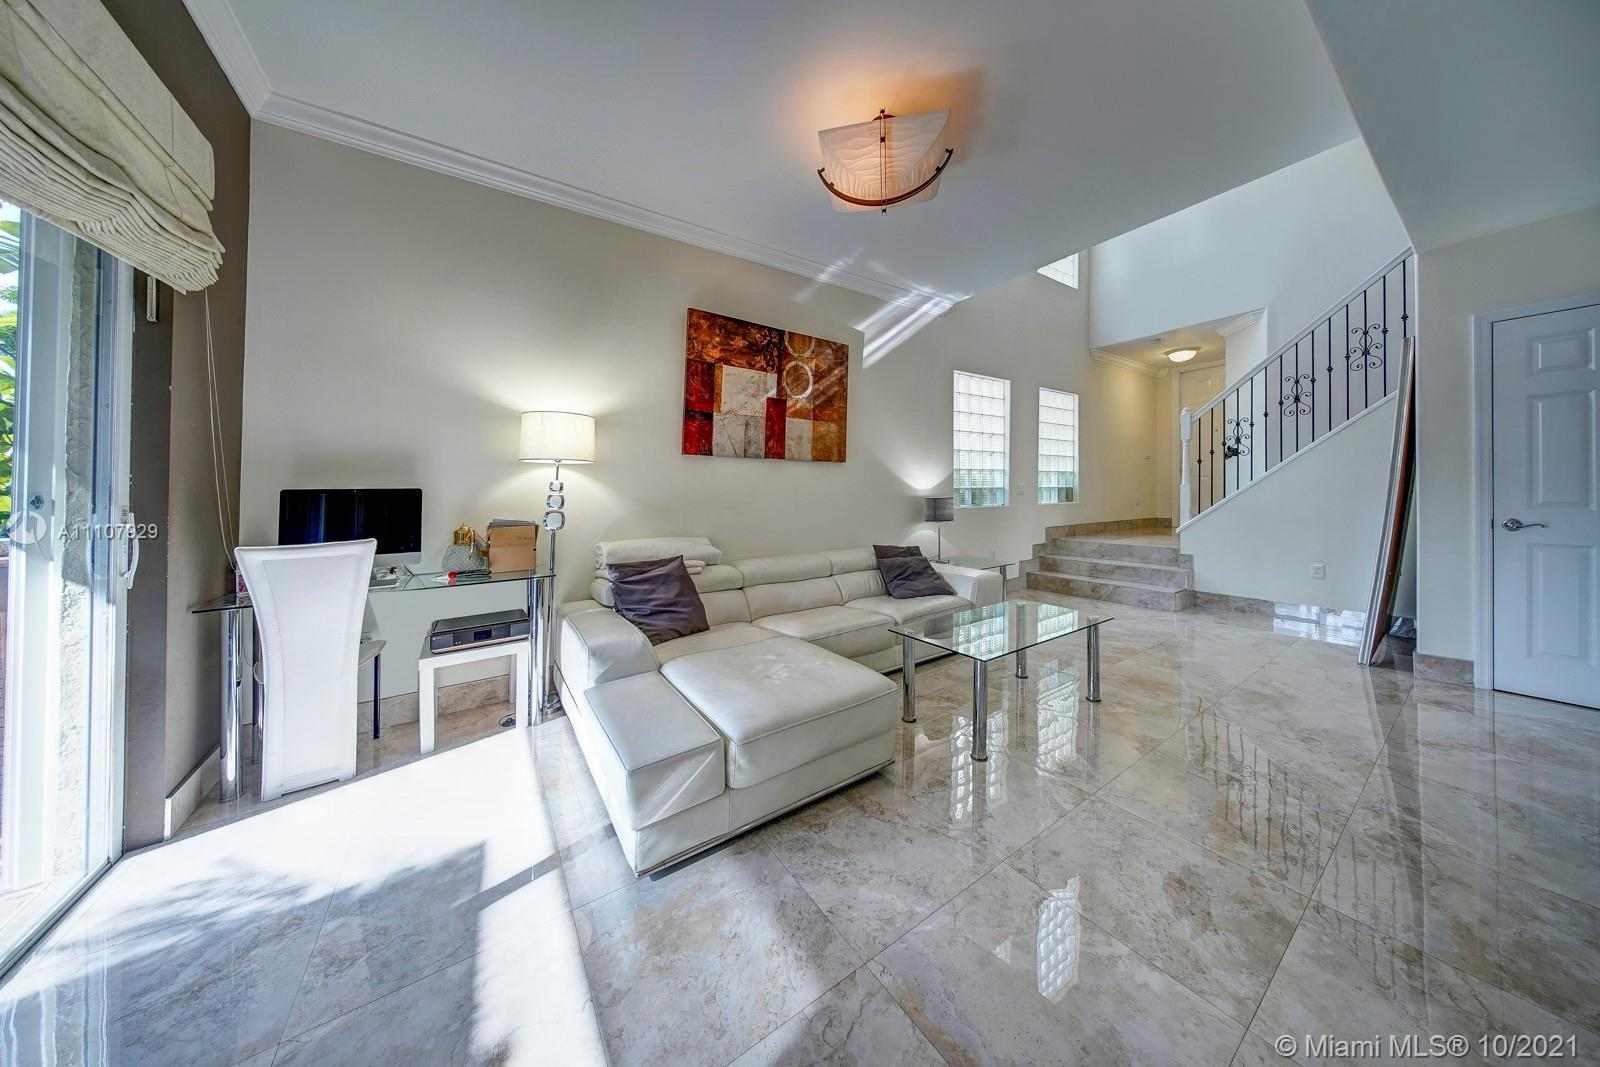 Beautiful 4 Bedroom, 2.5 bath single family home in Aventura Lakes. This home boasts marble and wood